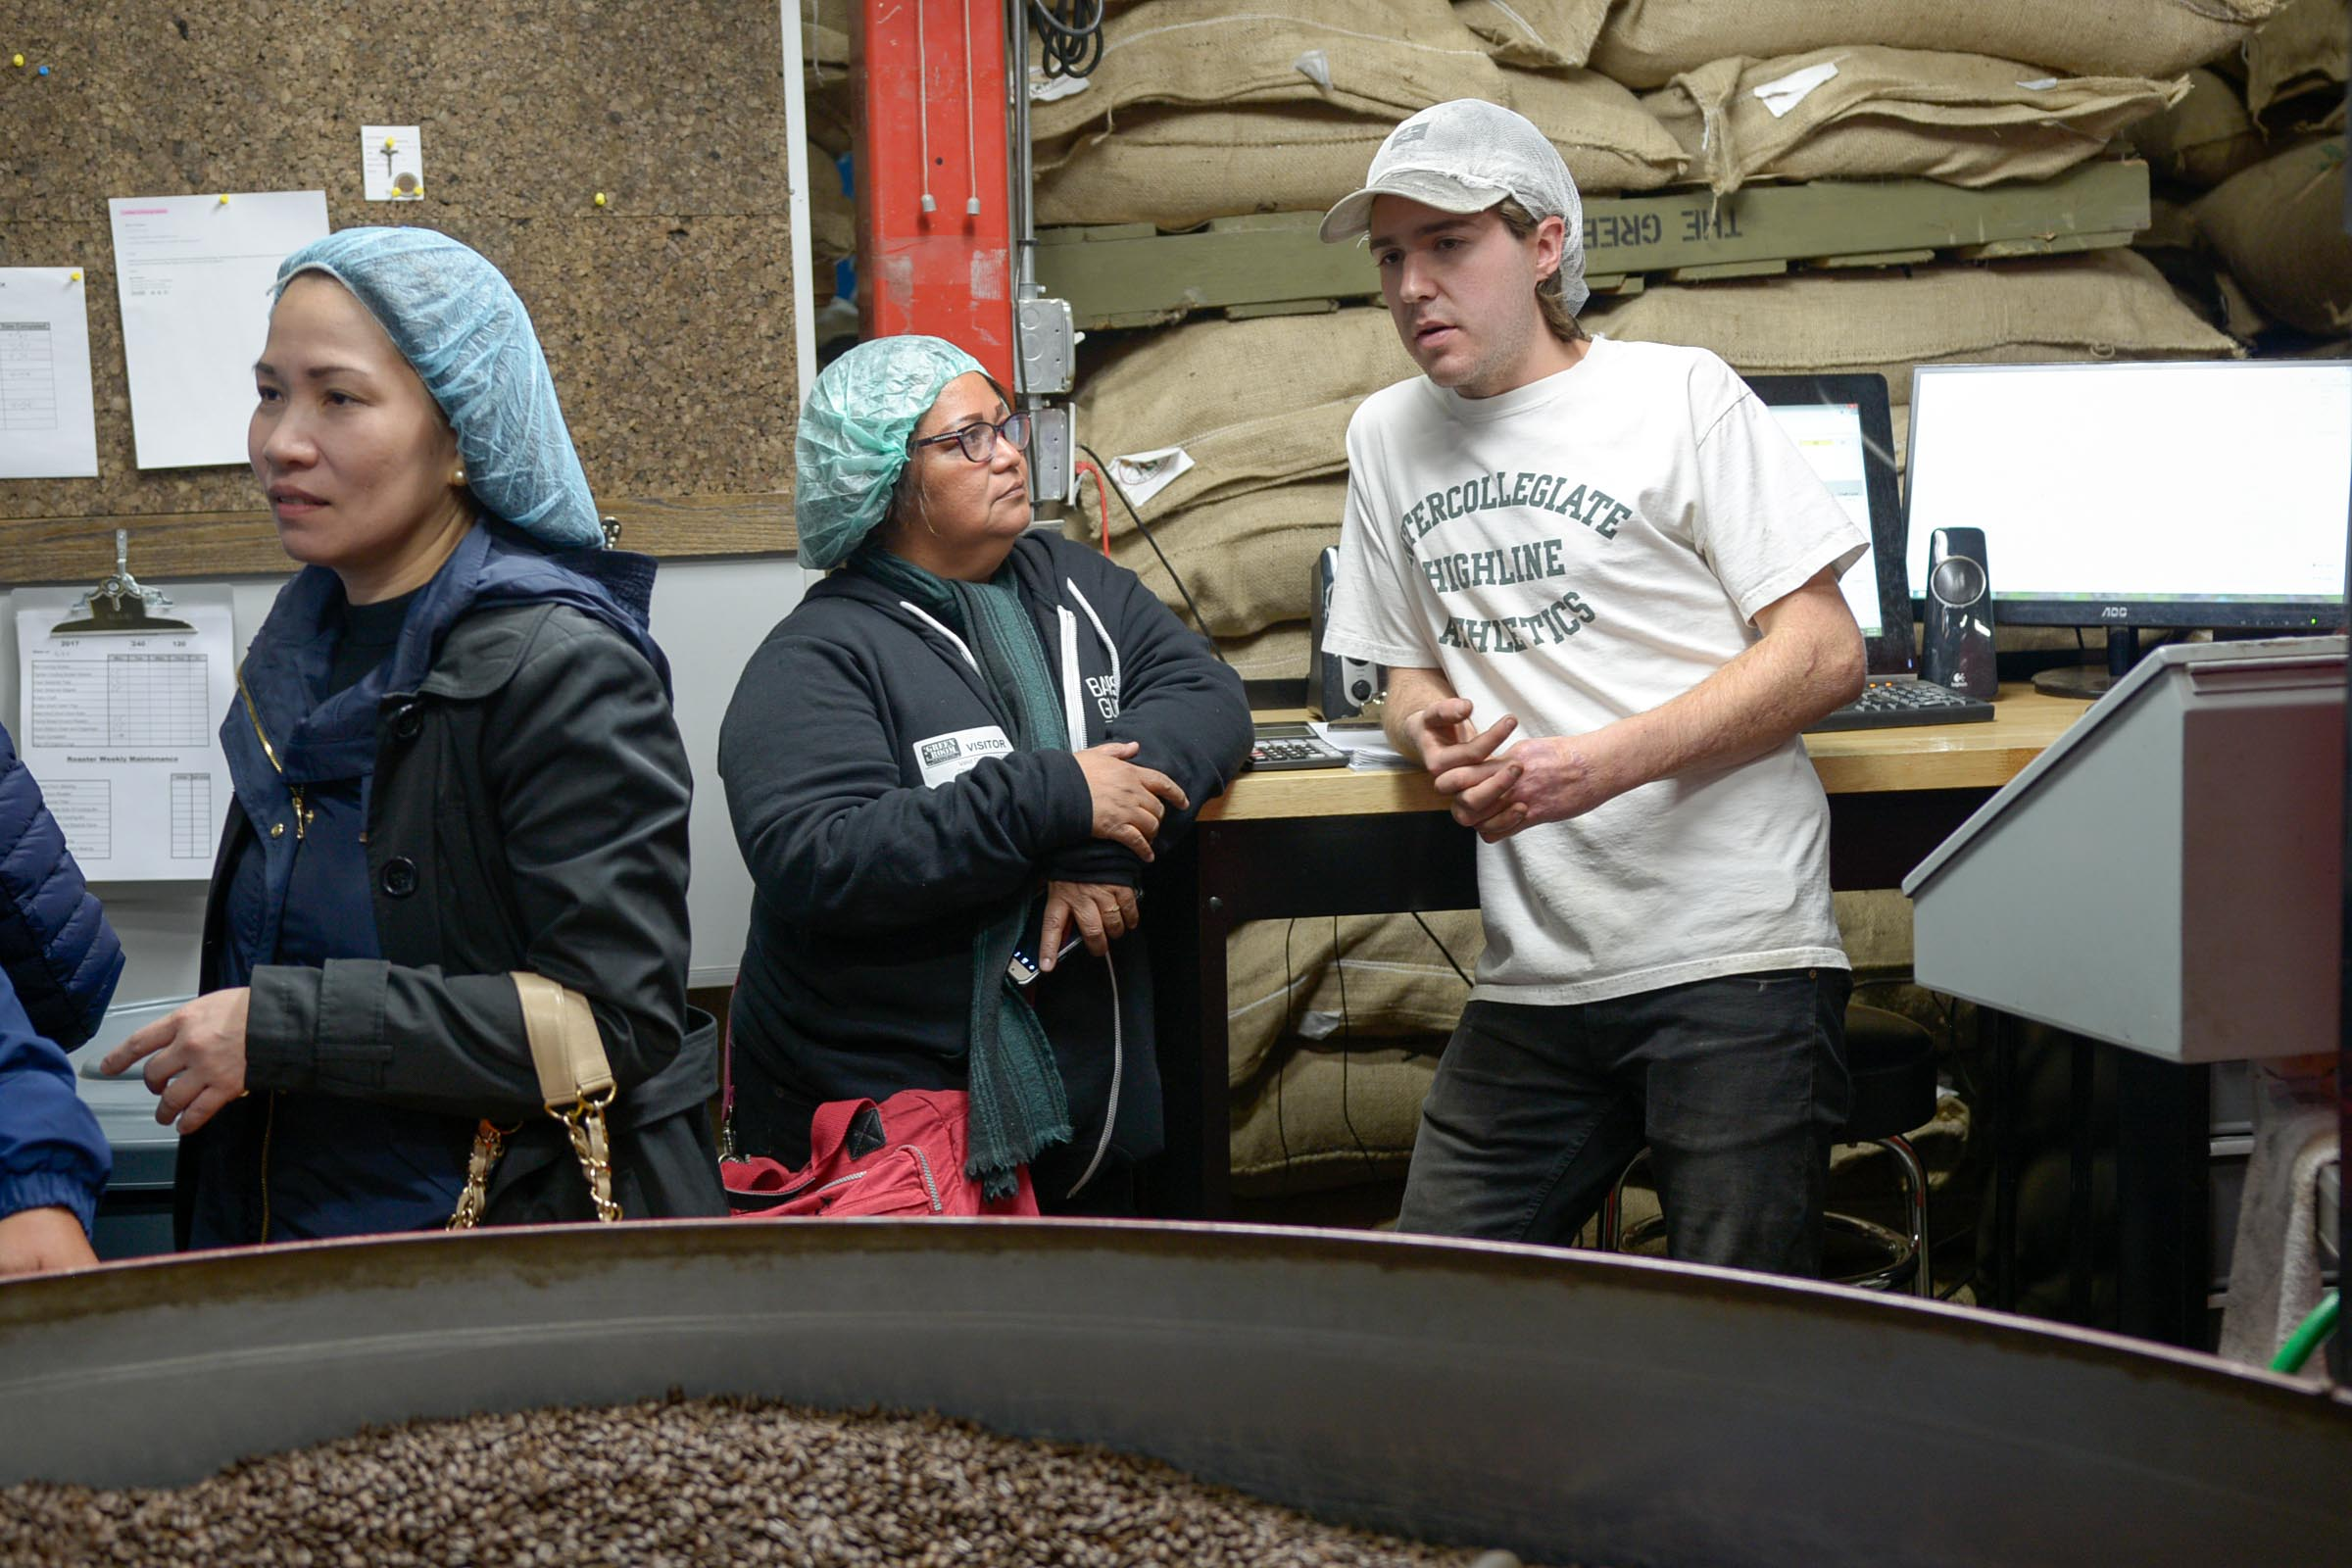 Roaster/Grower Imelda Mendoza discusses Roasting with Dillanos Roaster